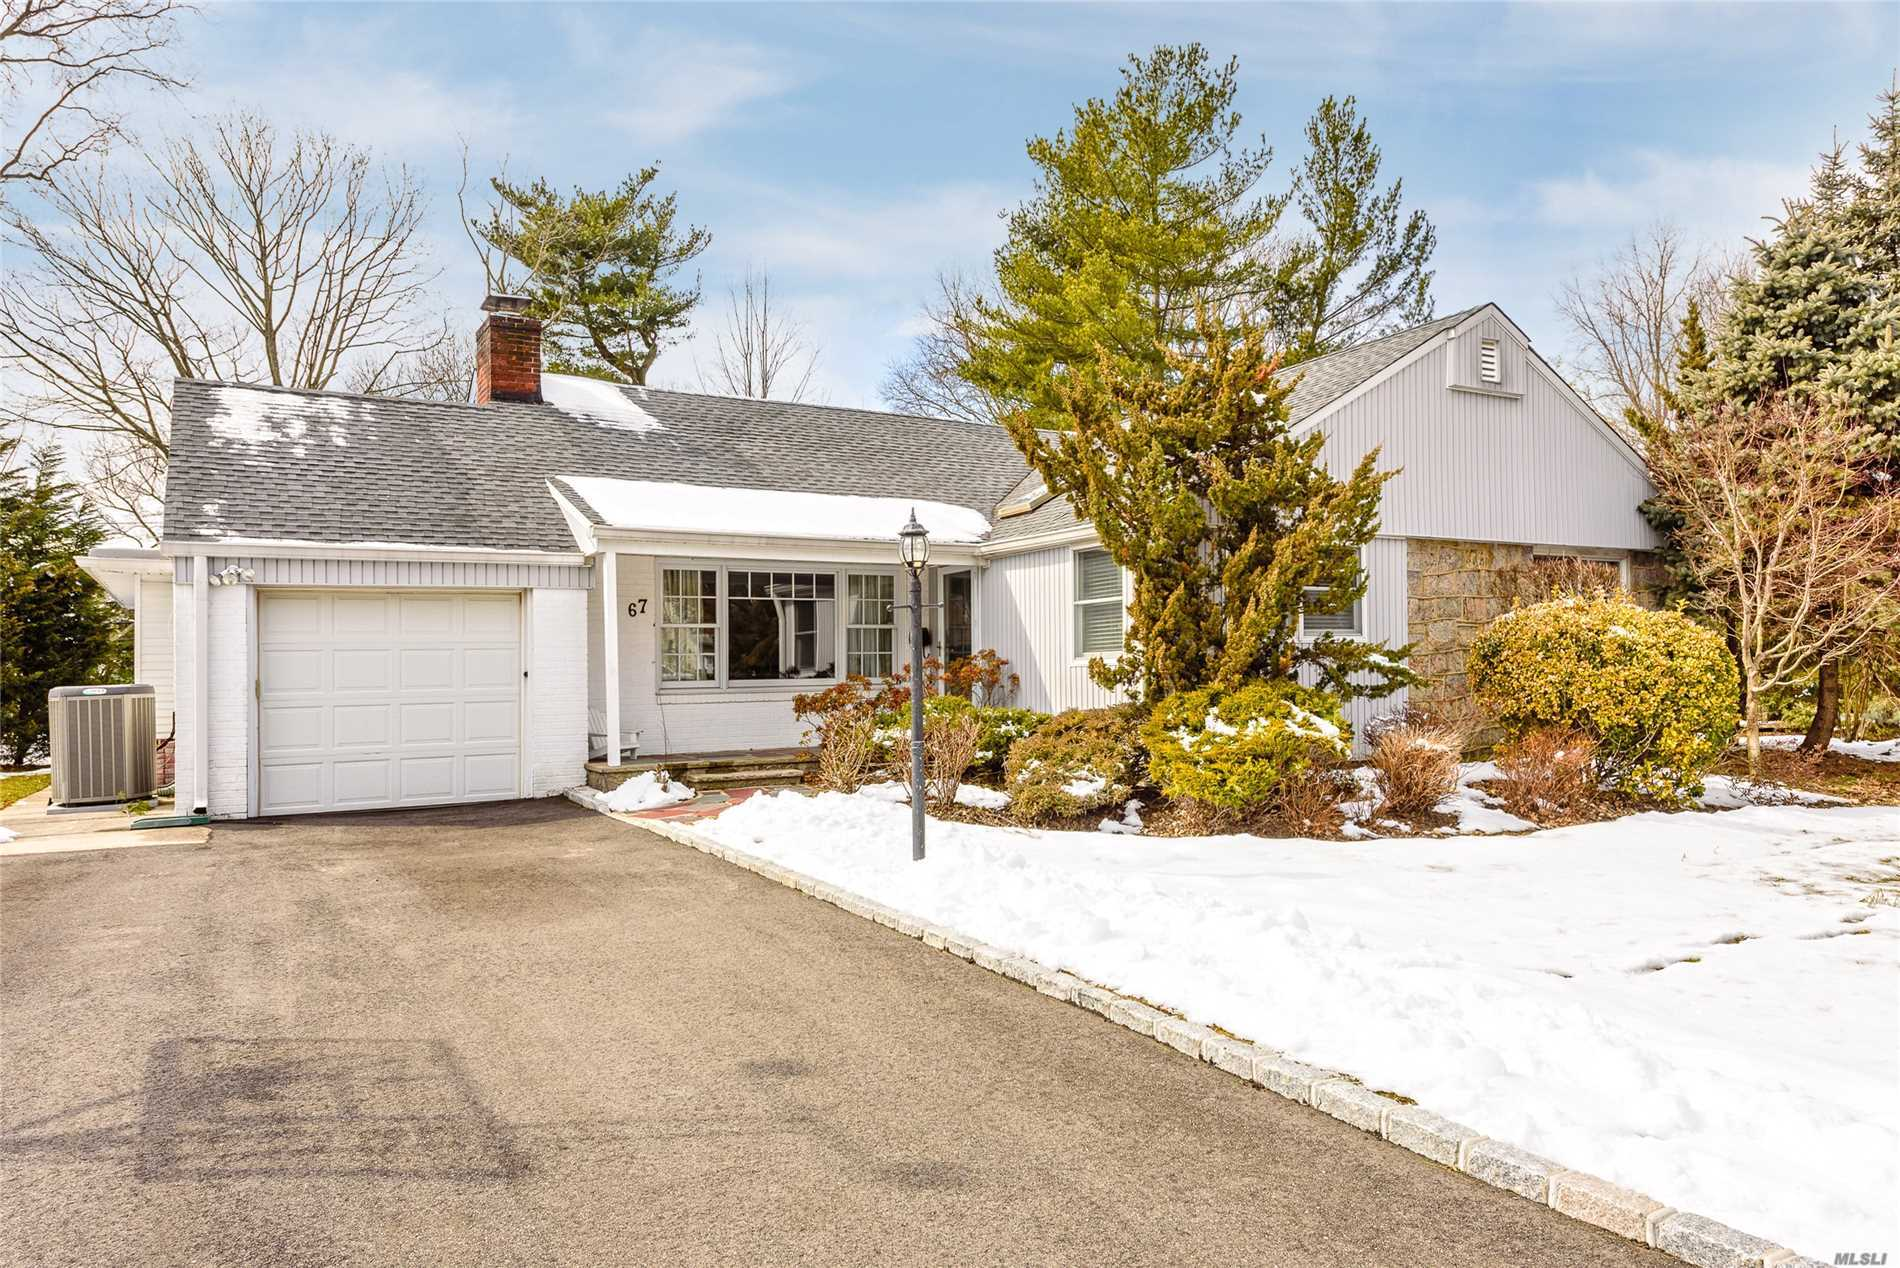 67 Rockhill Rd East Hills, NY 11577